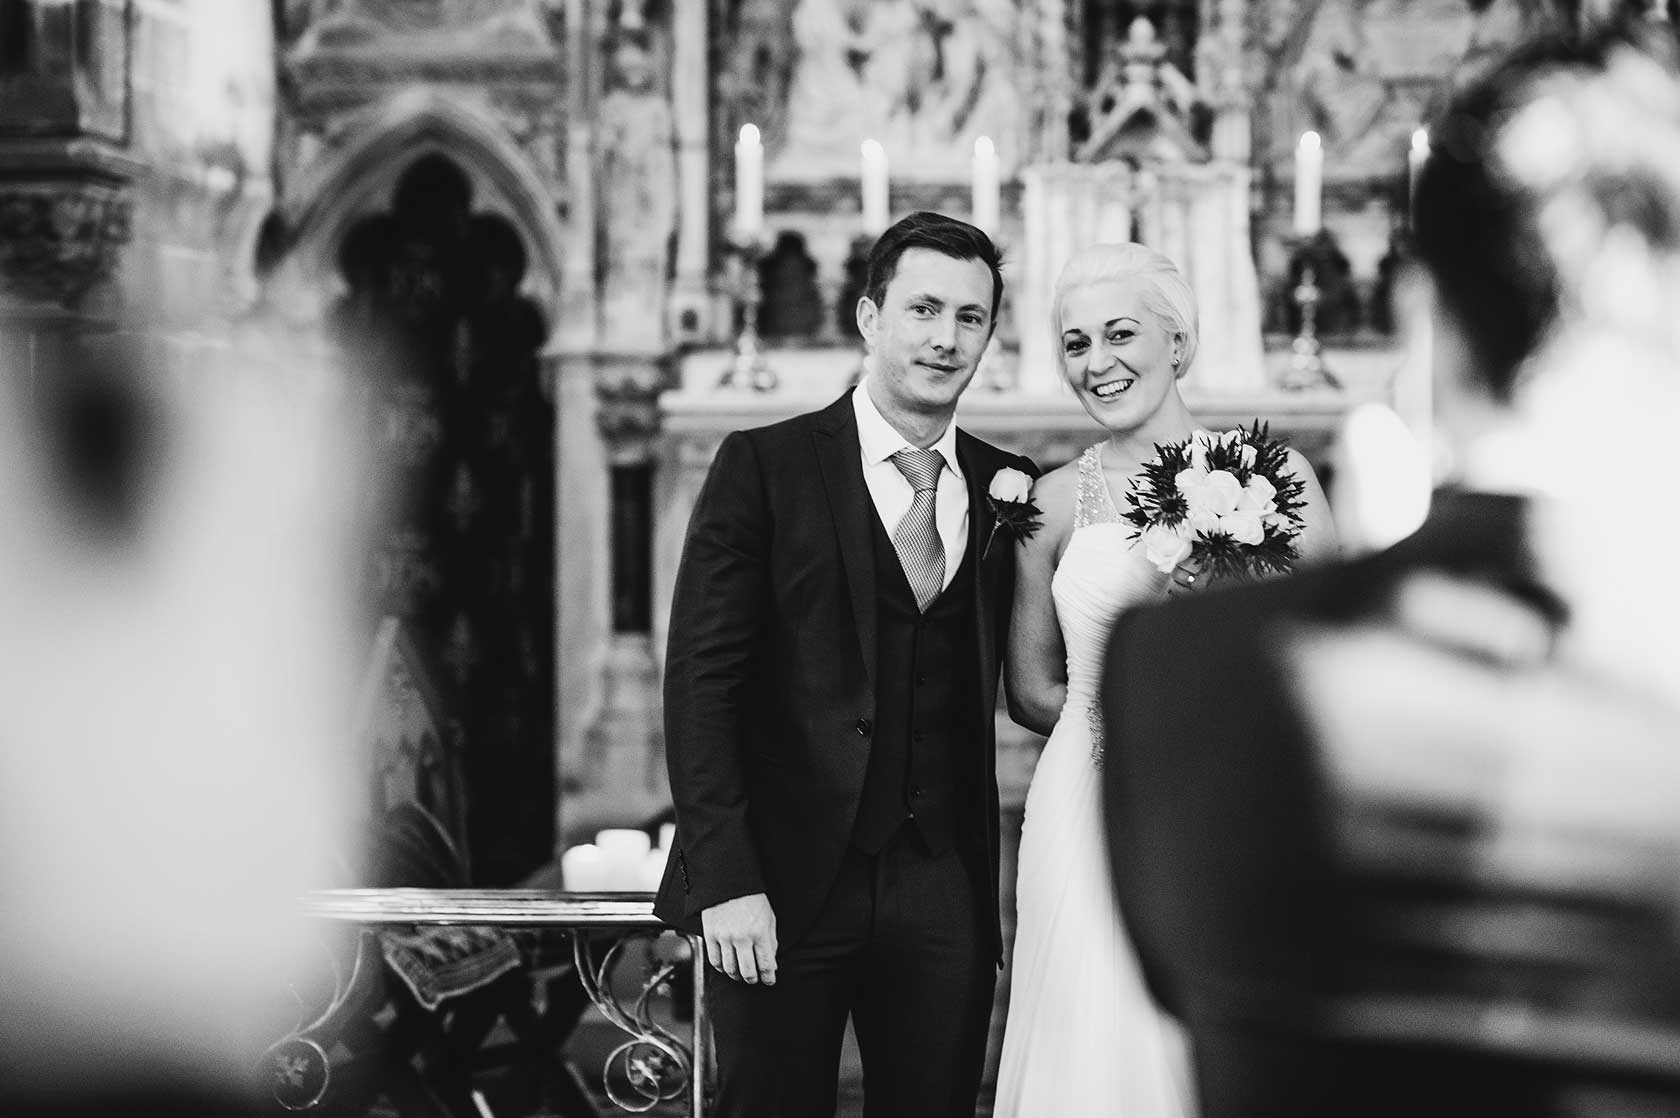 Rudding Park Wedding in North Yorkshire